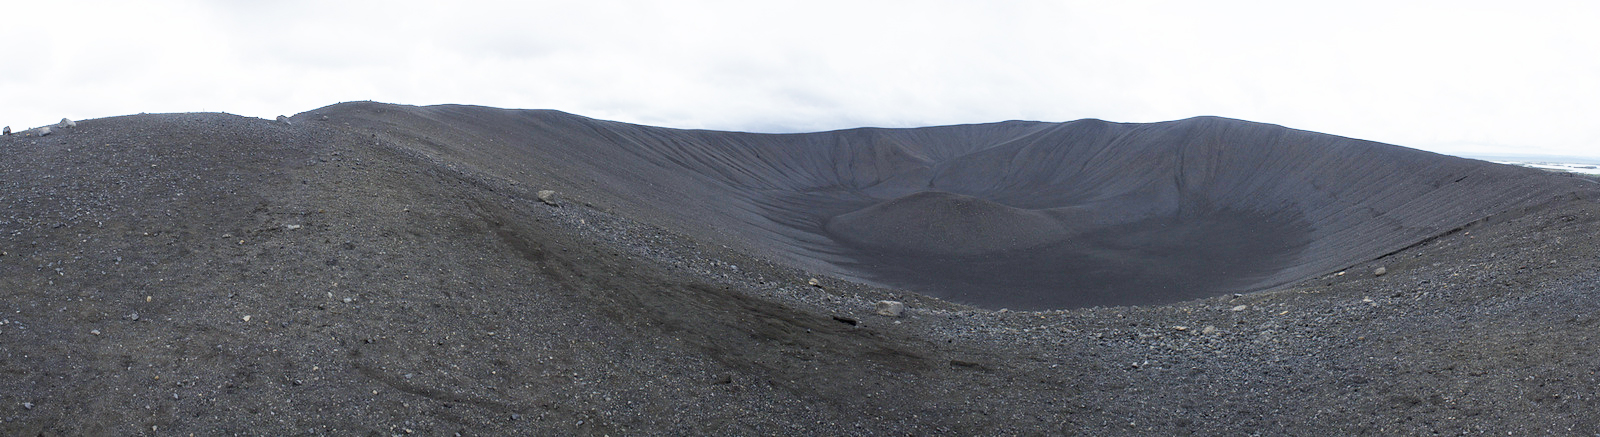 Hverfjall from the path looking south